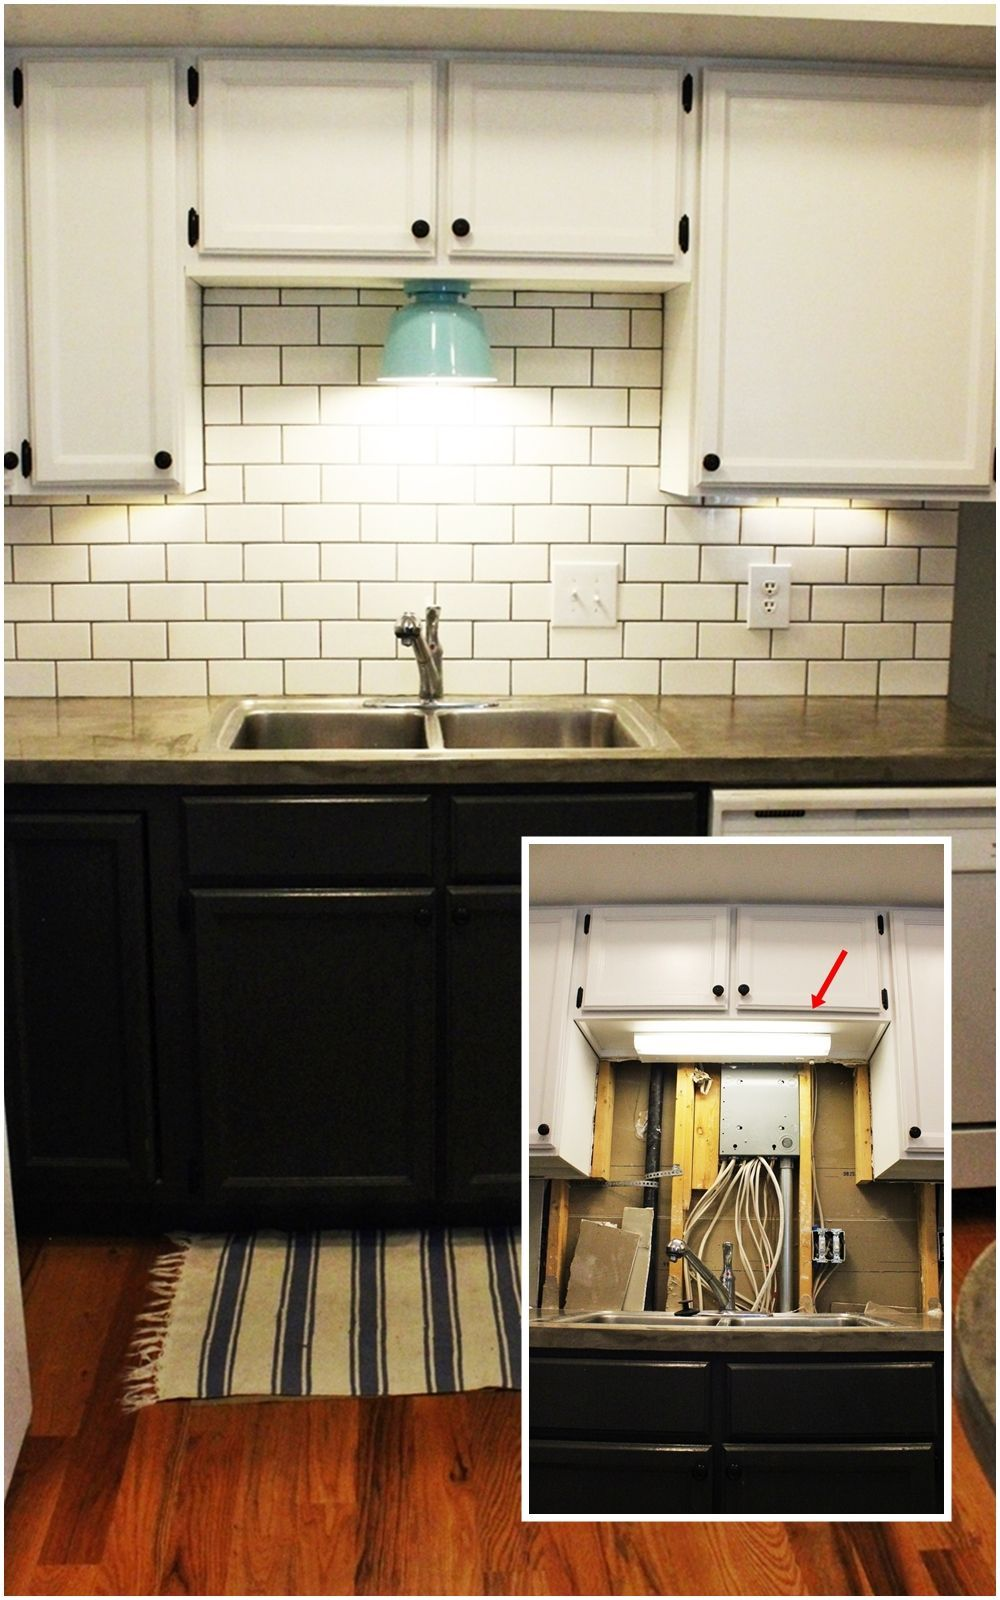 Kitchen Sink Cabinet diy kitchen lighting upgrade: led under-cabinet lights & above-the